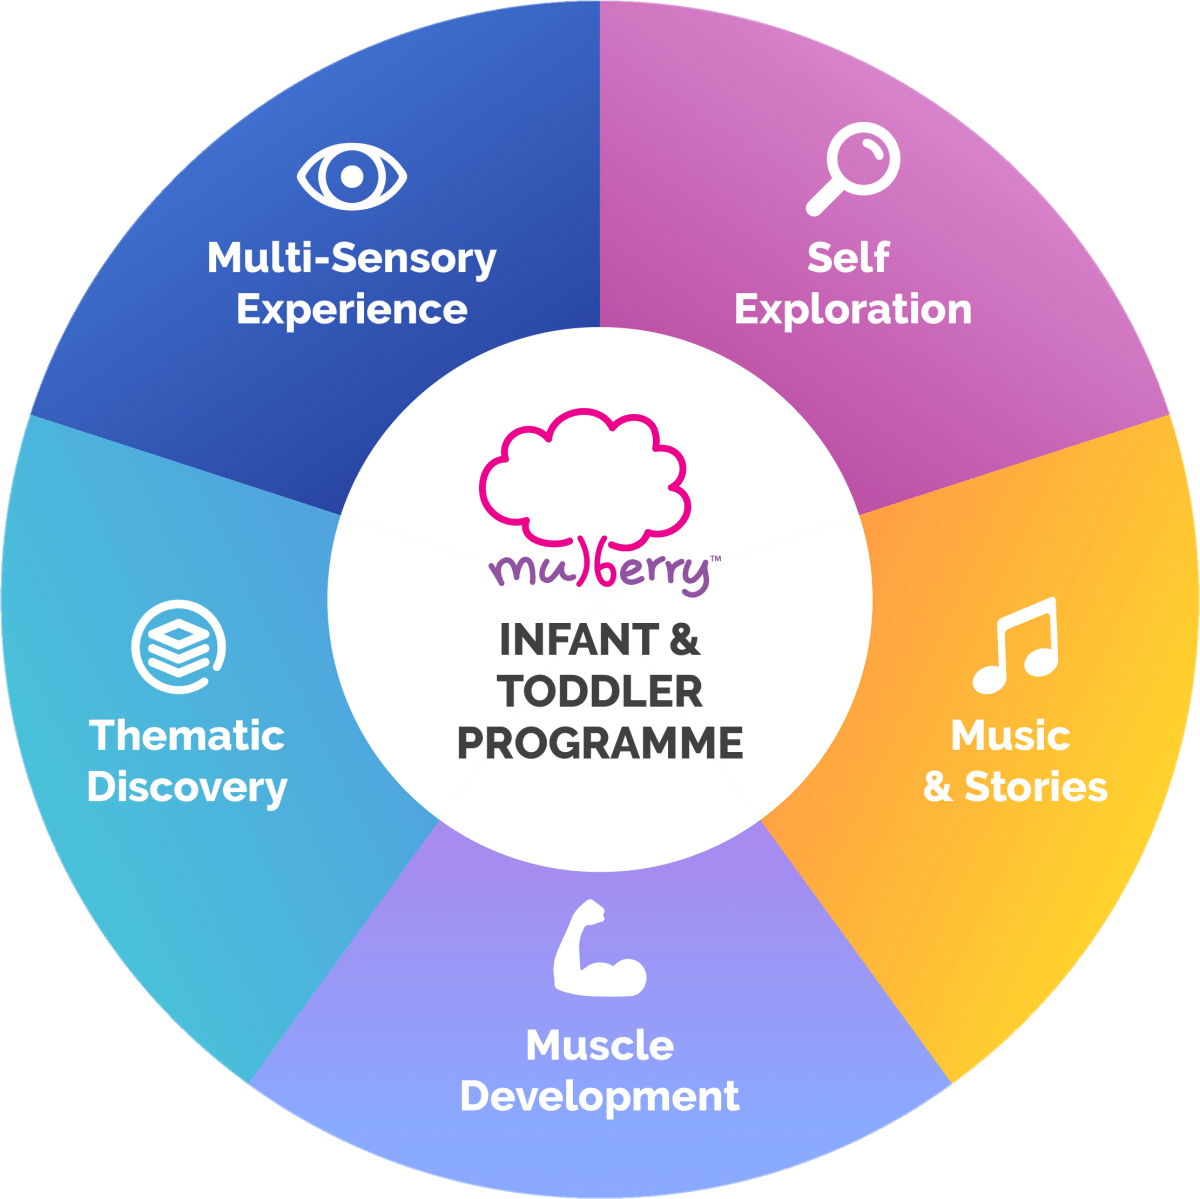 Infant & Toddler Programme